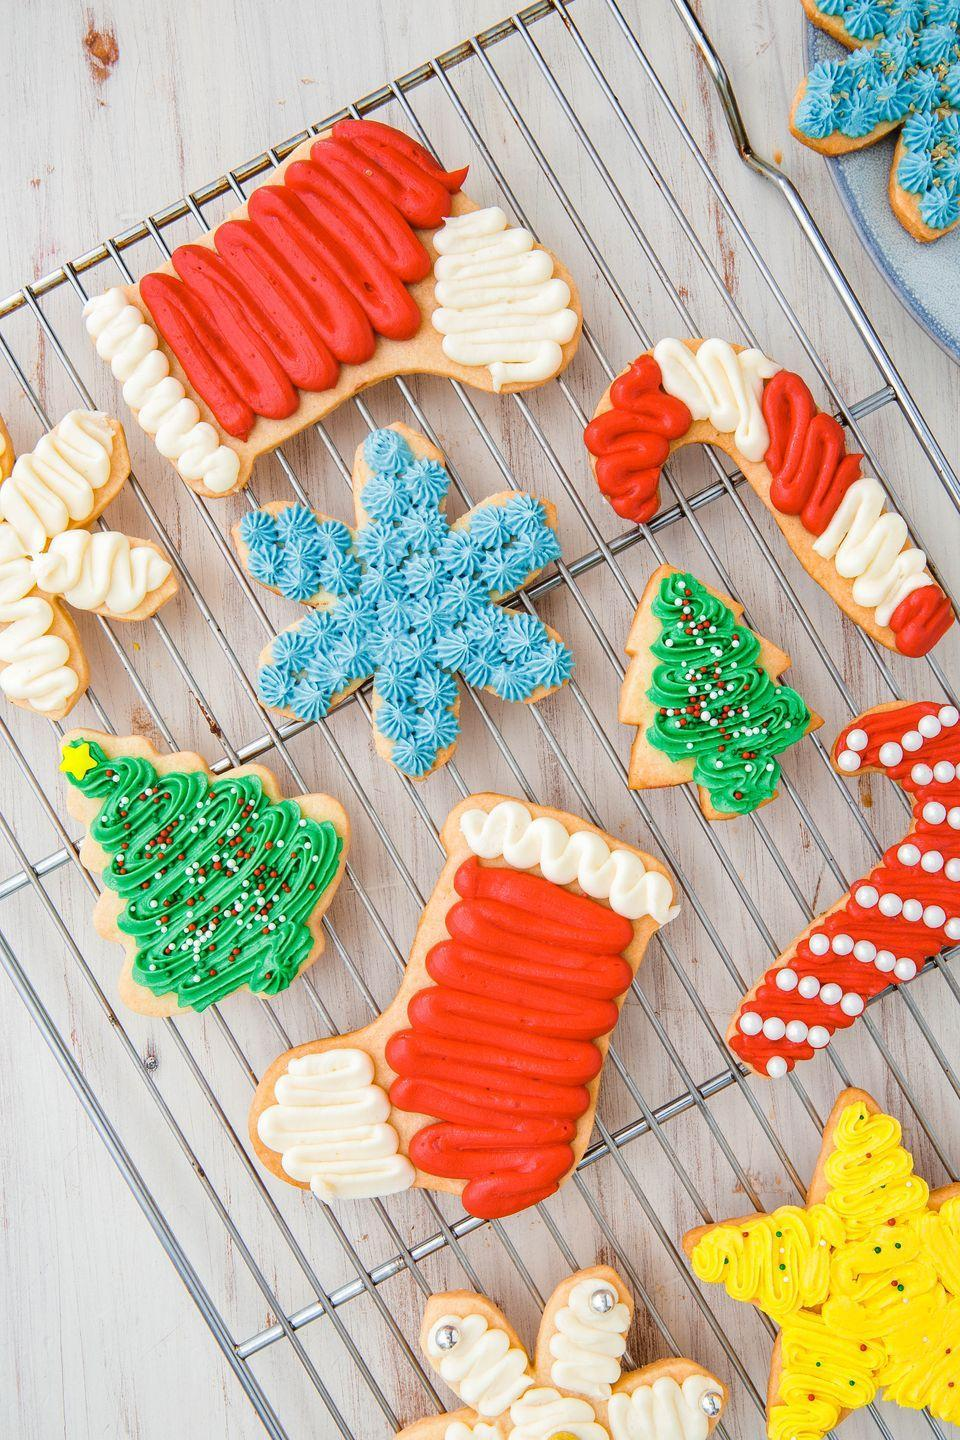 "<p>You have to leave a plate of cookies out for Santa as per tradition, but make sure you have enough so you can enjoy them, too.</p><p><a class=""link rapid-noclick-resp"" href=""https://www.delish.com/holiday-recipes/christmas/g2177/easy-christmas-cookies/"" rel=""nofollow noopener"" target=""_blank"" data-ylk=""slk:GET CHRISTMAS COOKIE RECIPES"">GET CHRISTMAS COOKIE RECIPES</a></p>"